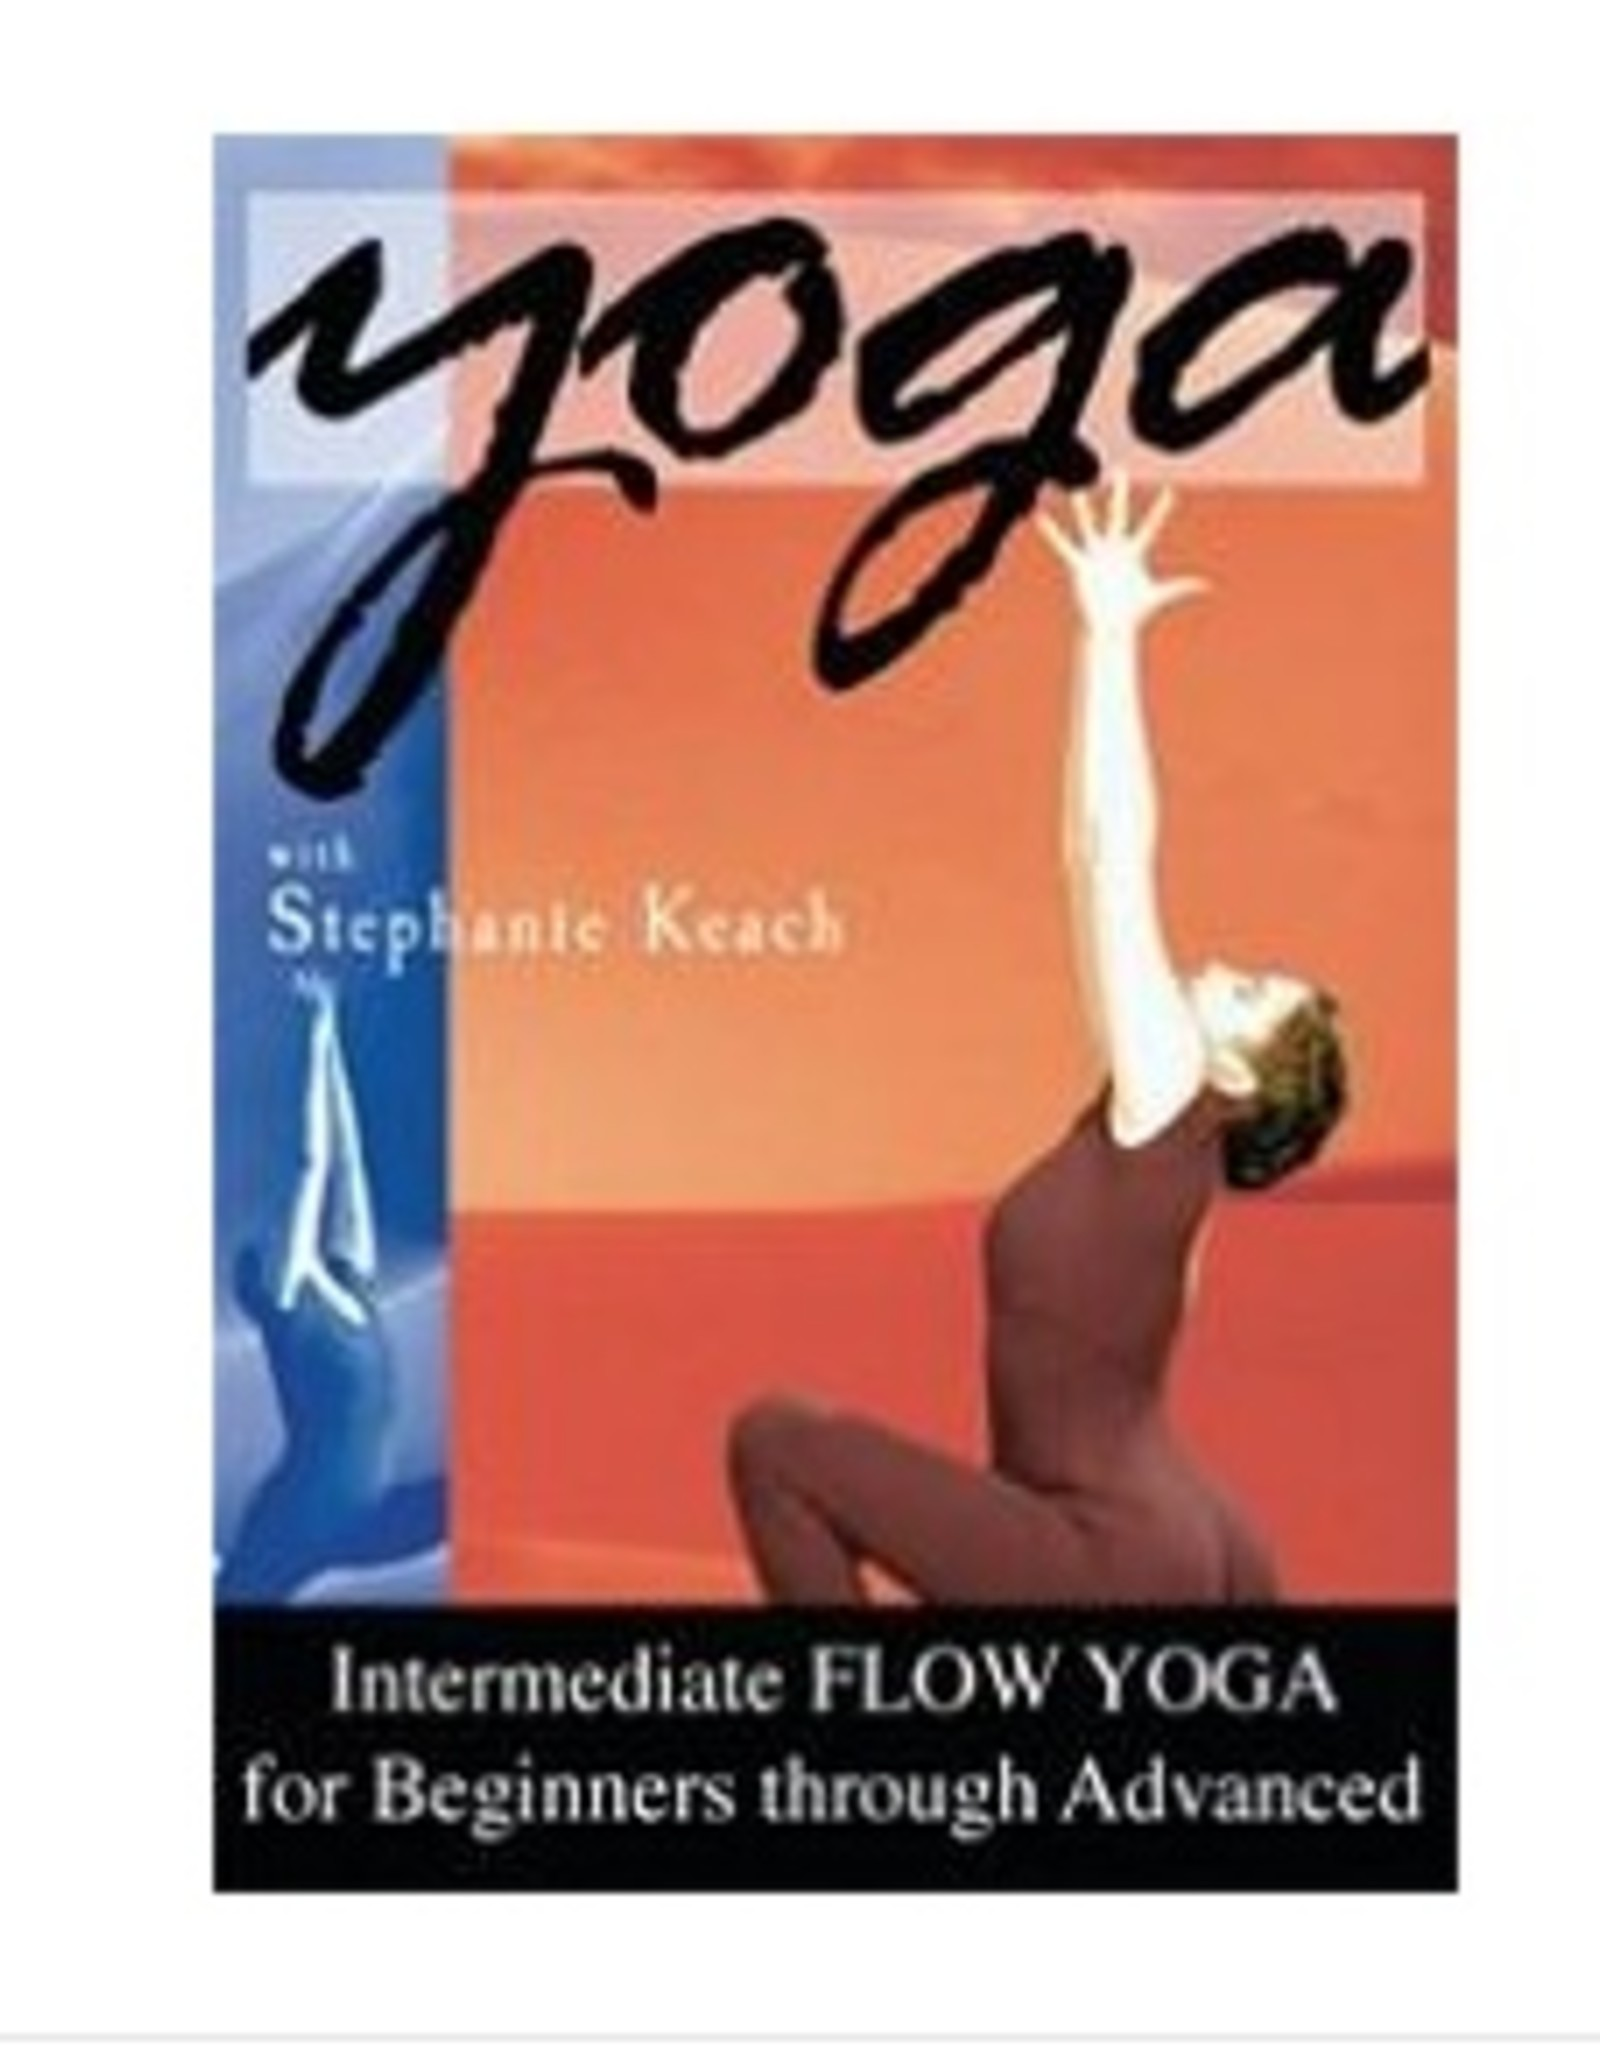 Intermediate Flow Yoga by Stephanie Keach